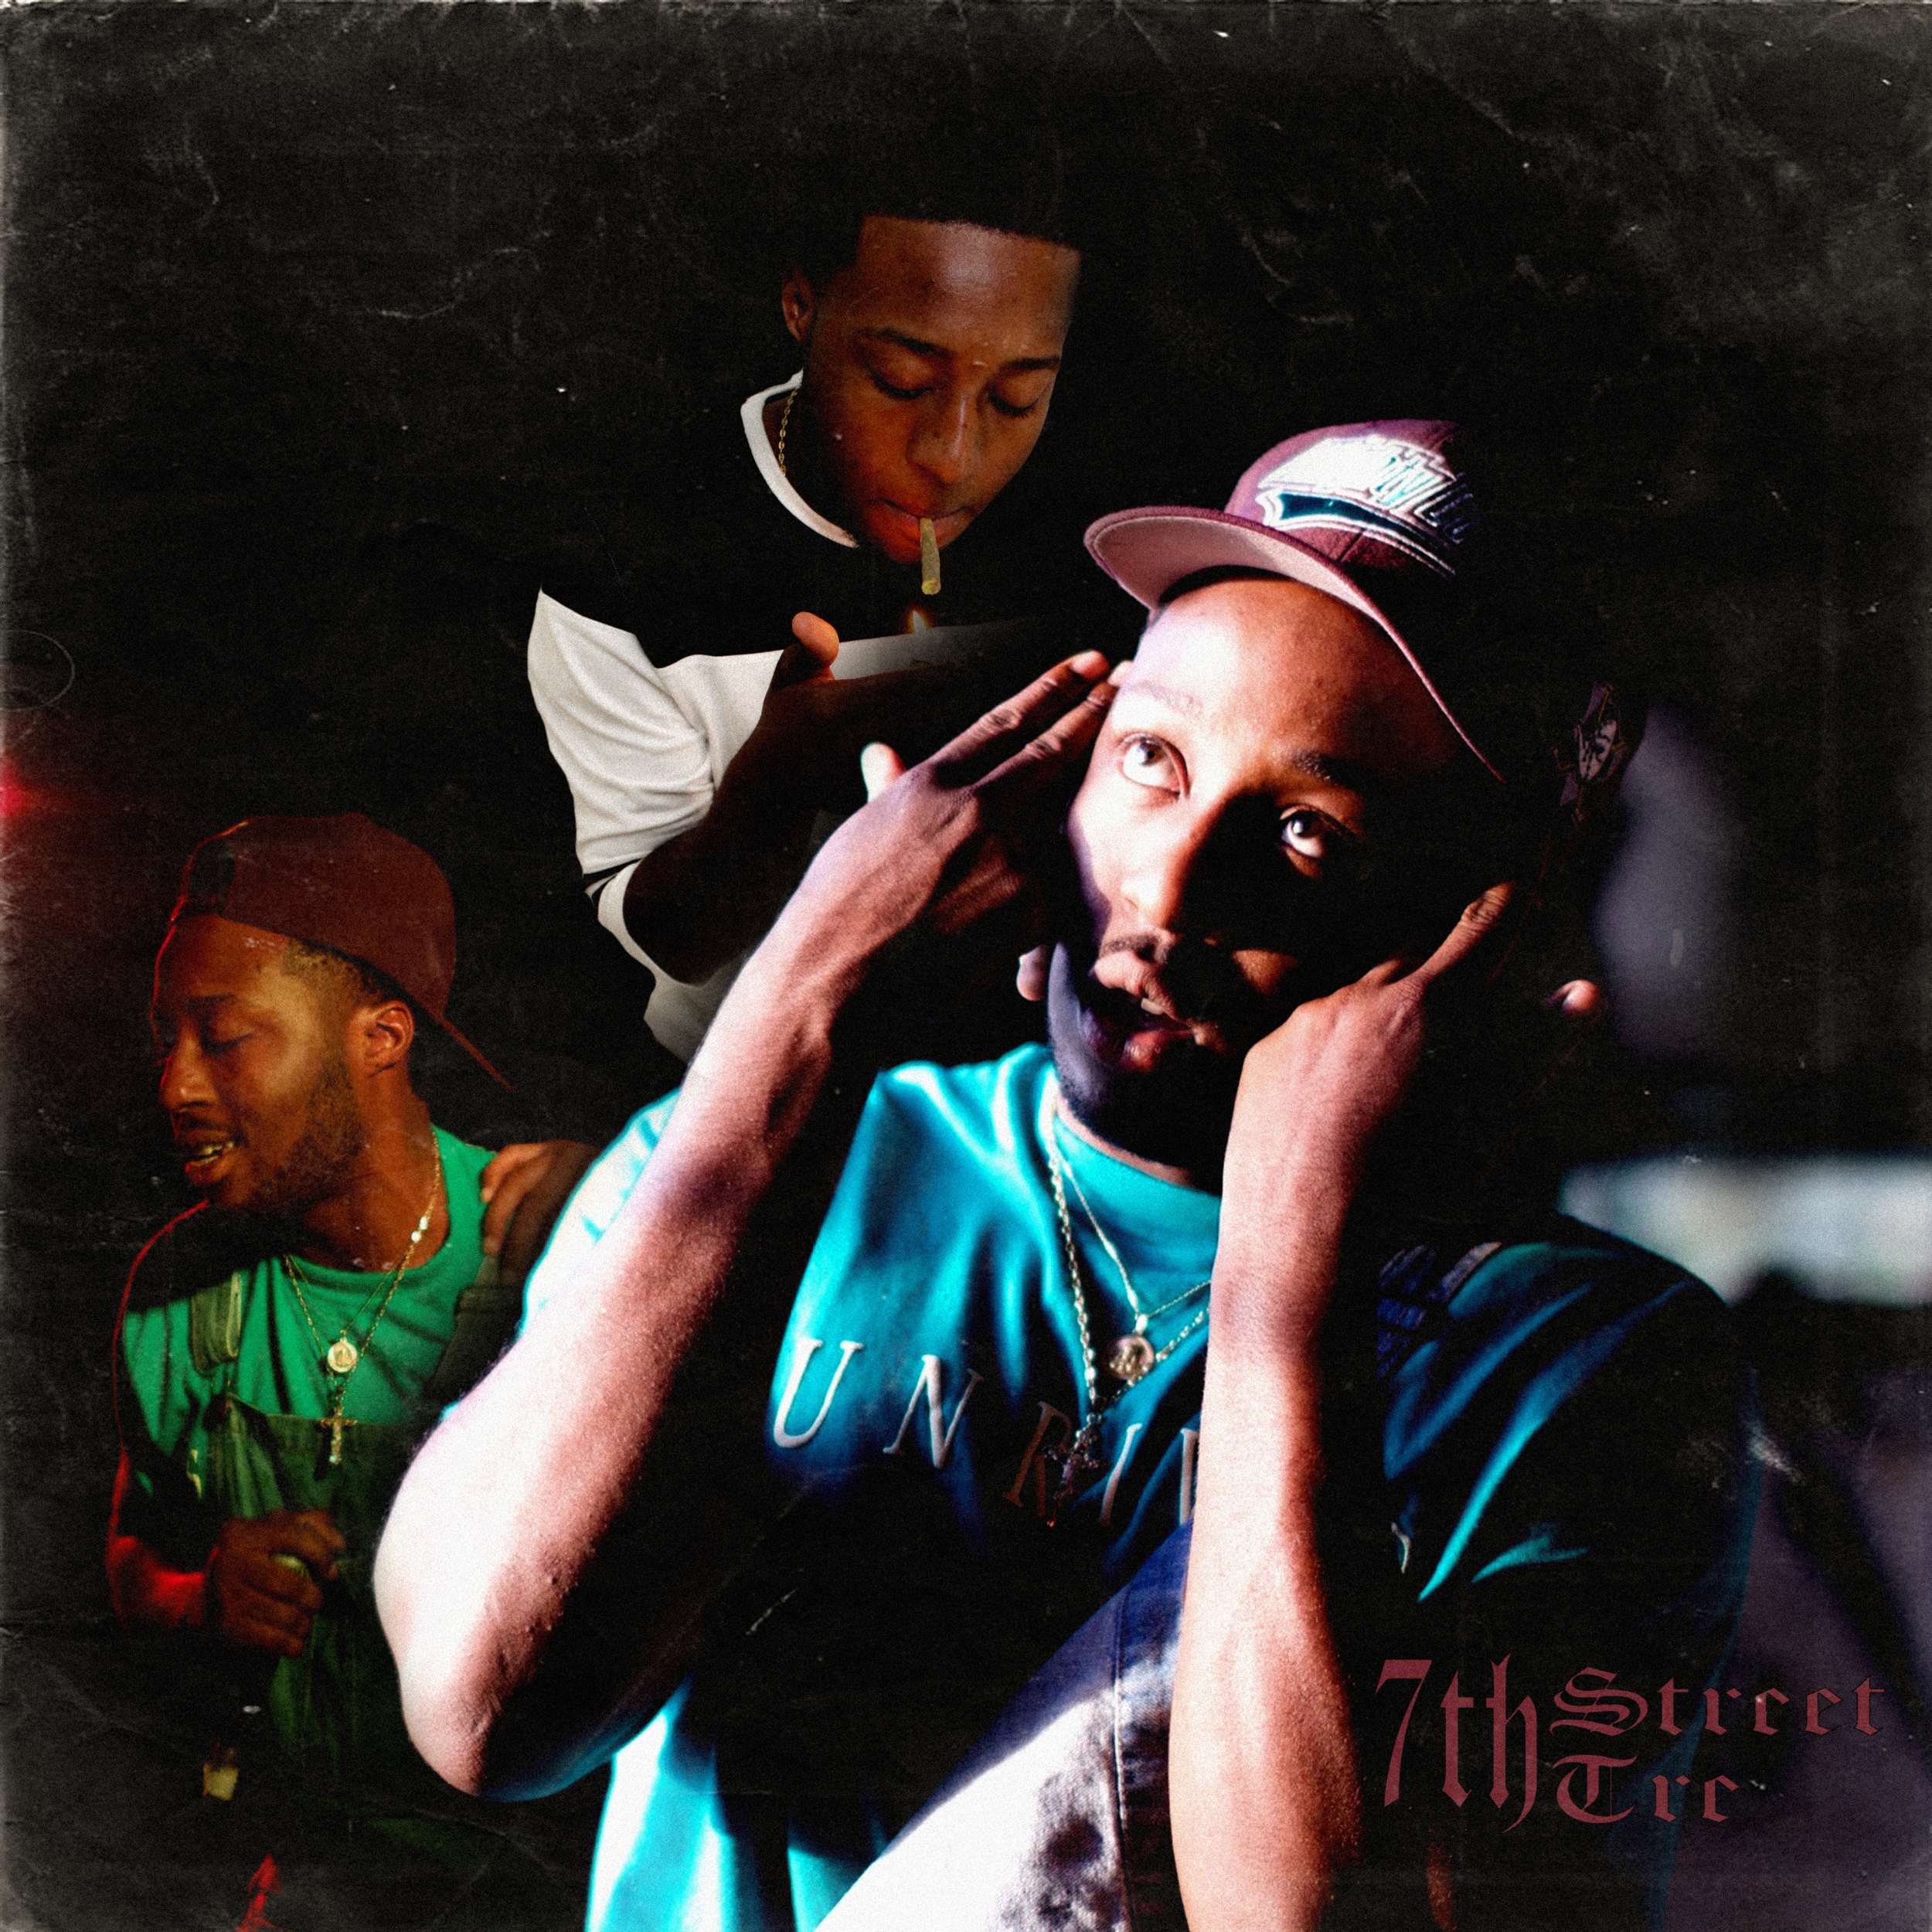 7th Street Tre Cover Design